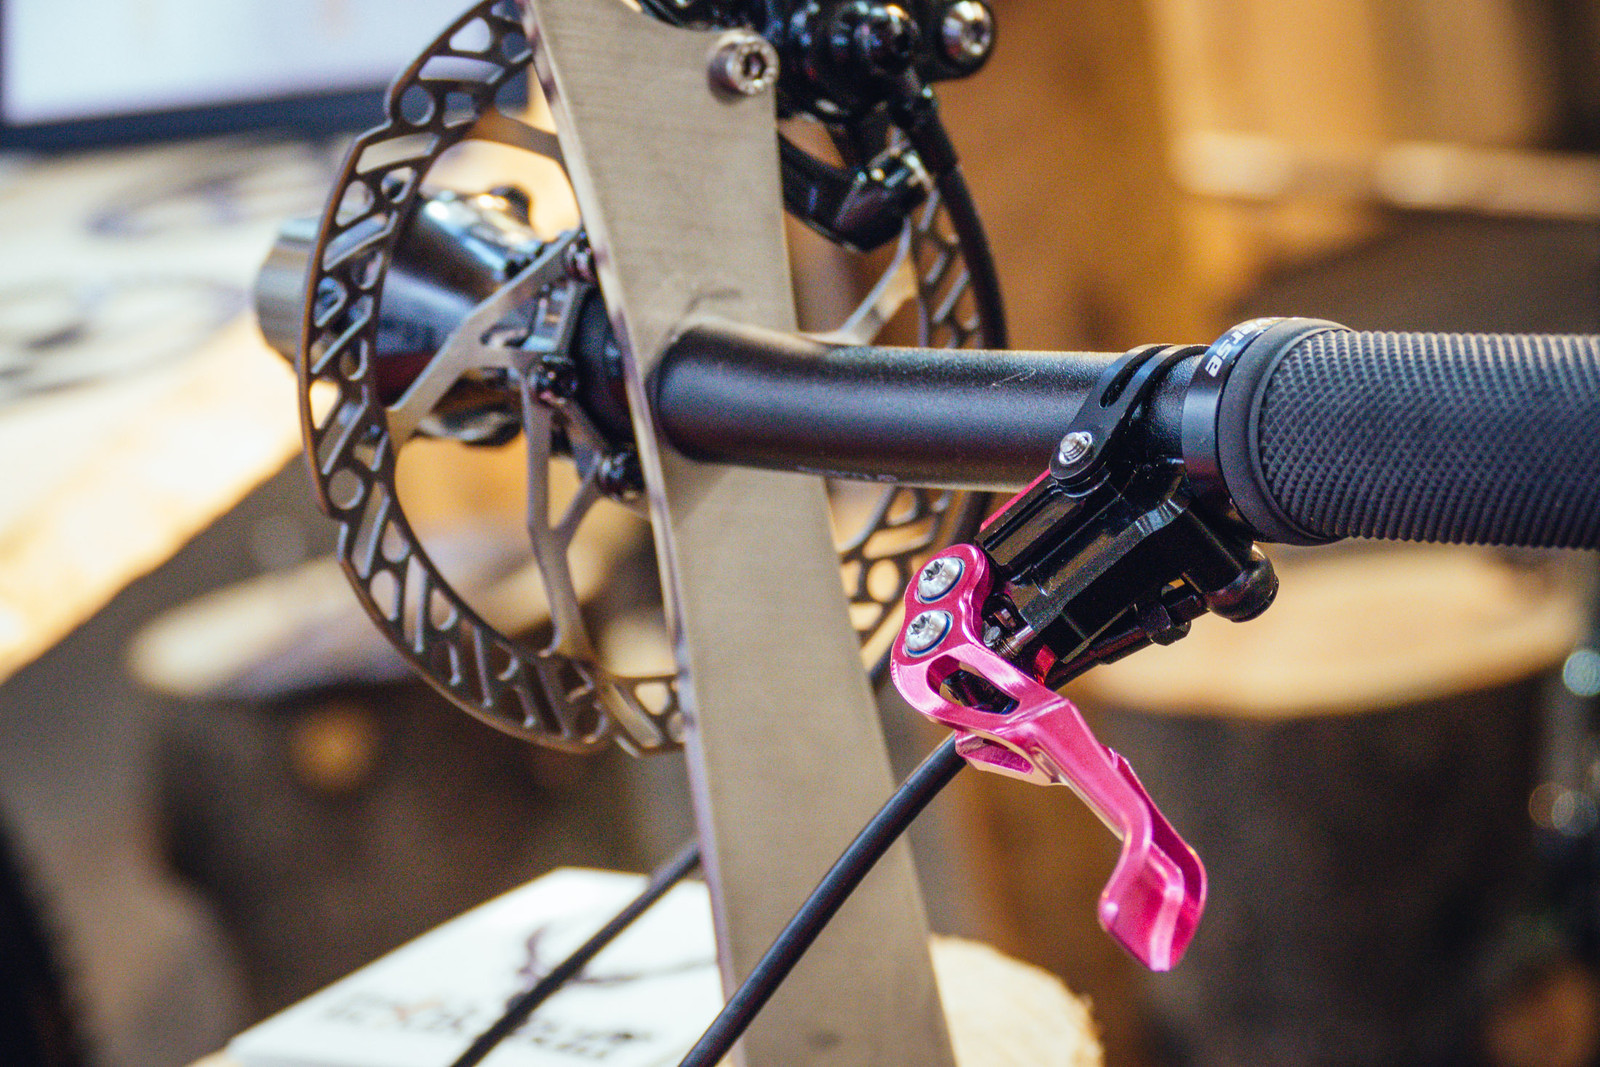 Ultra Light TrickStuff Hydraulic Disc Brakes - EUROBIKE - 2017 Mountain Bike Components - Mountain Biking Pictures - Vital MTB